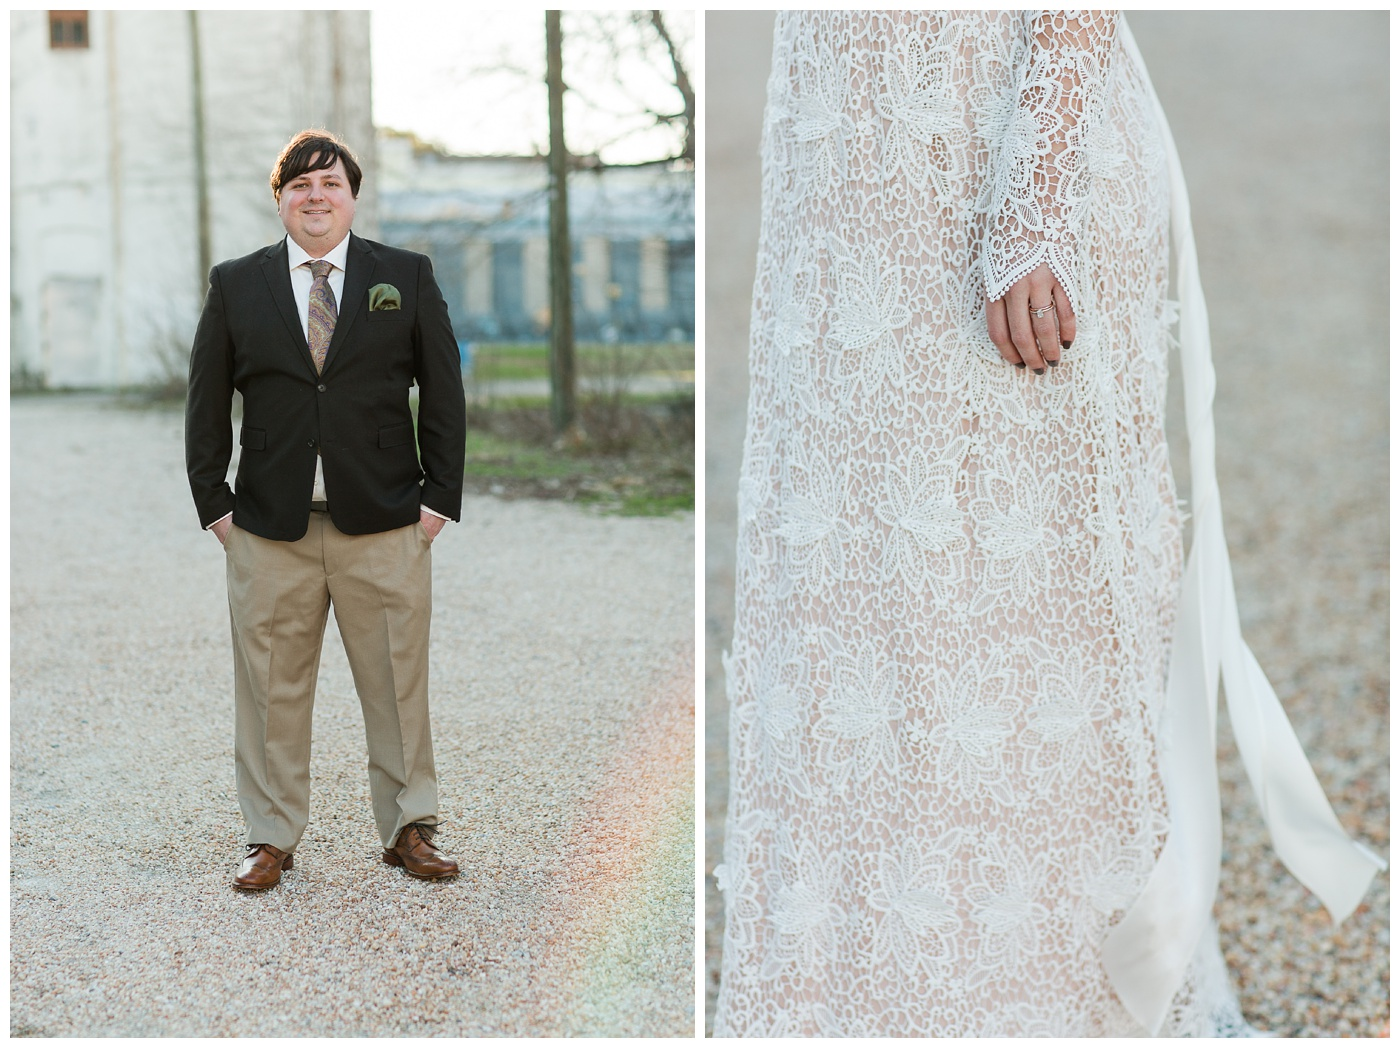 Allyce & Shane | Work Release Wedding